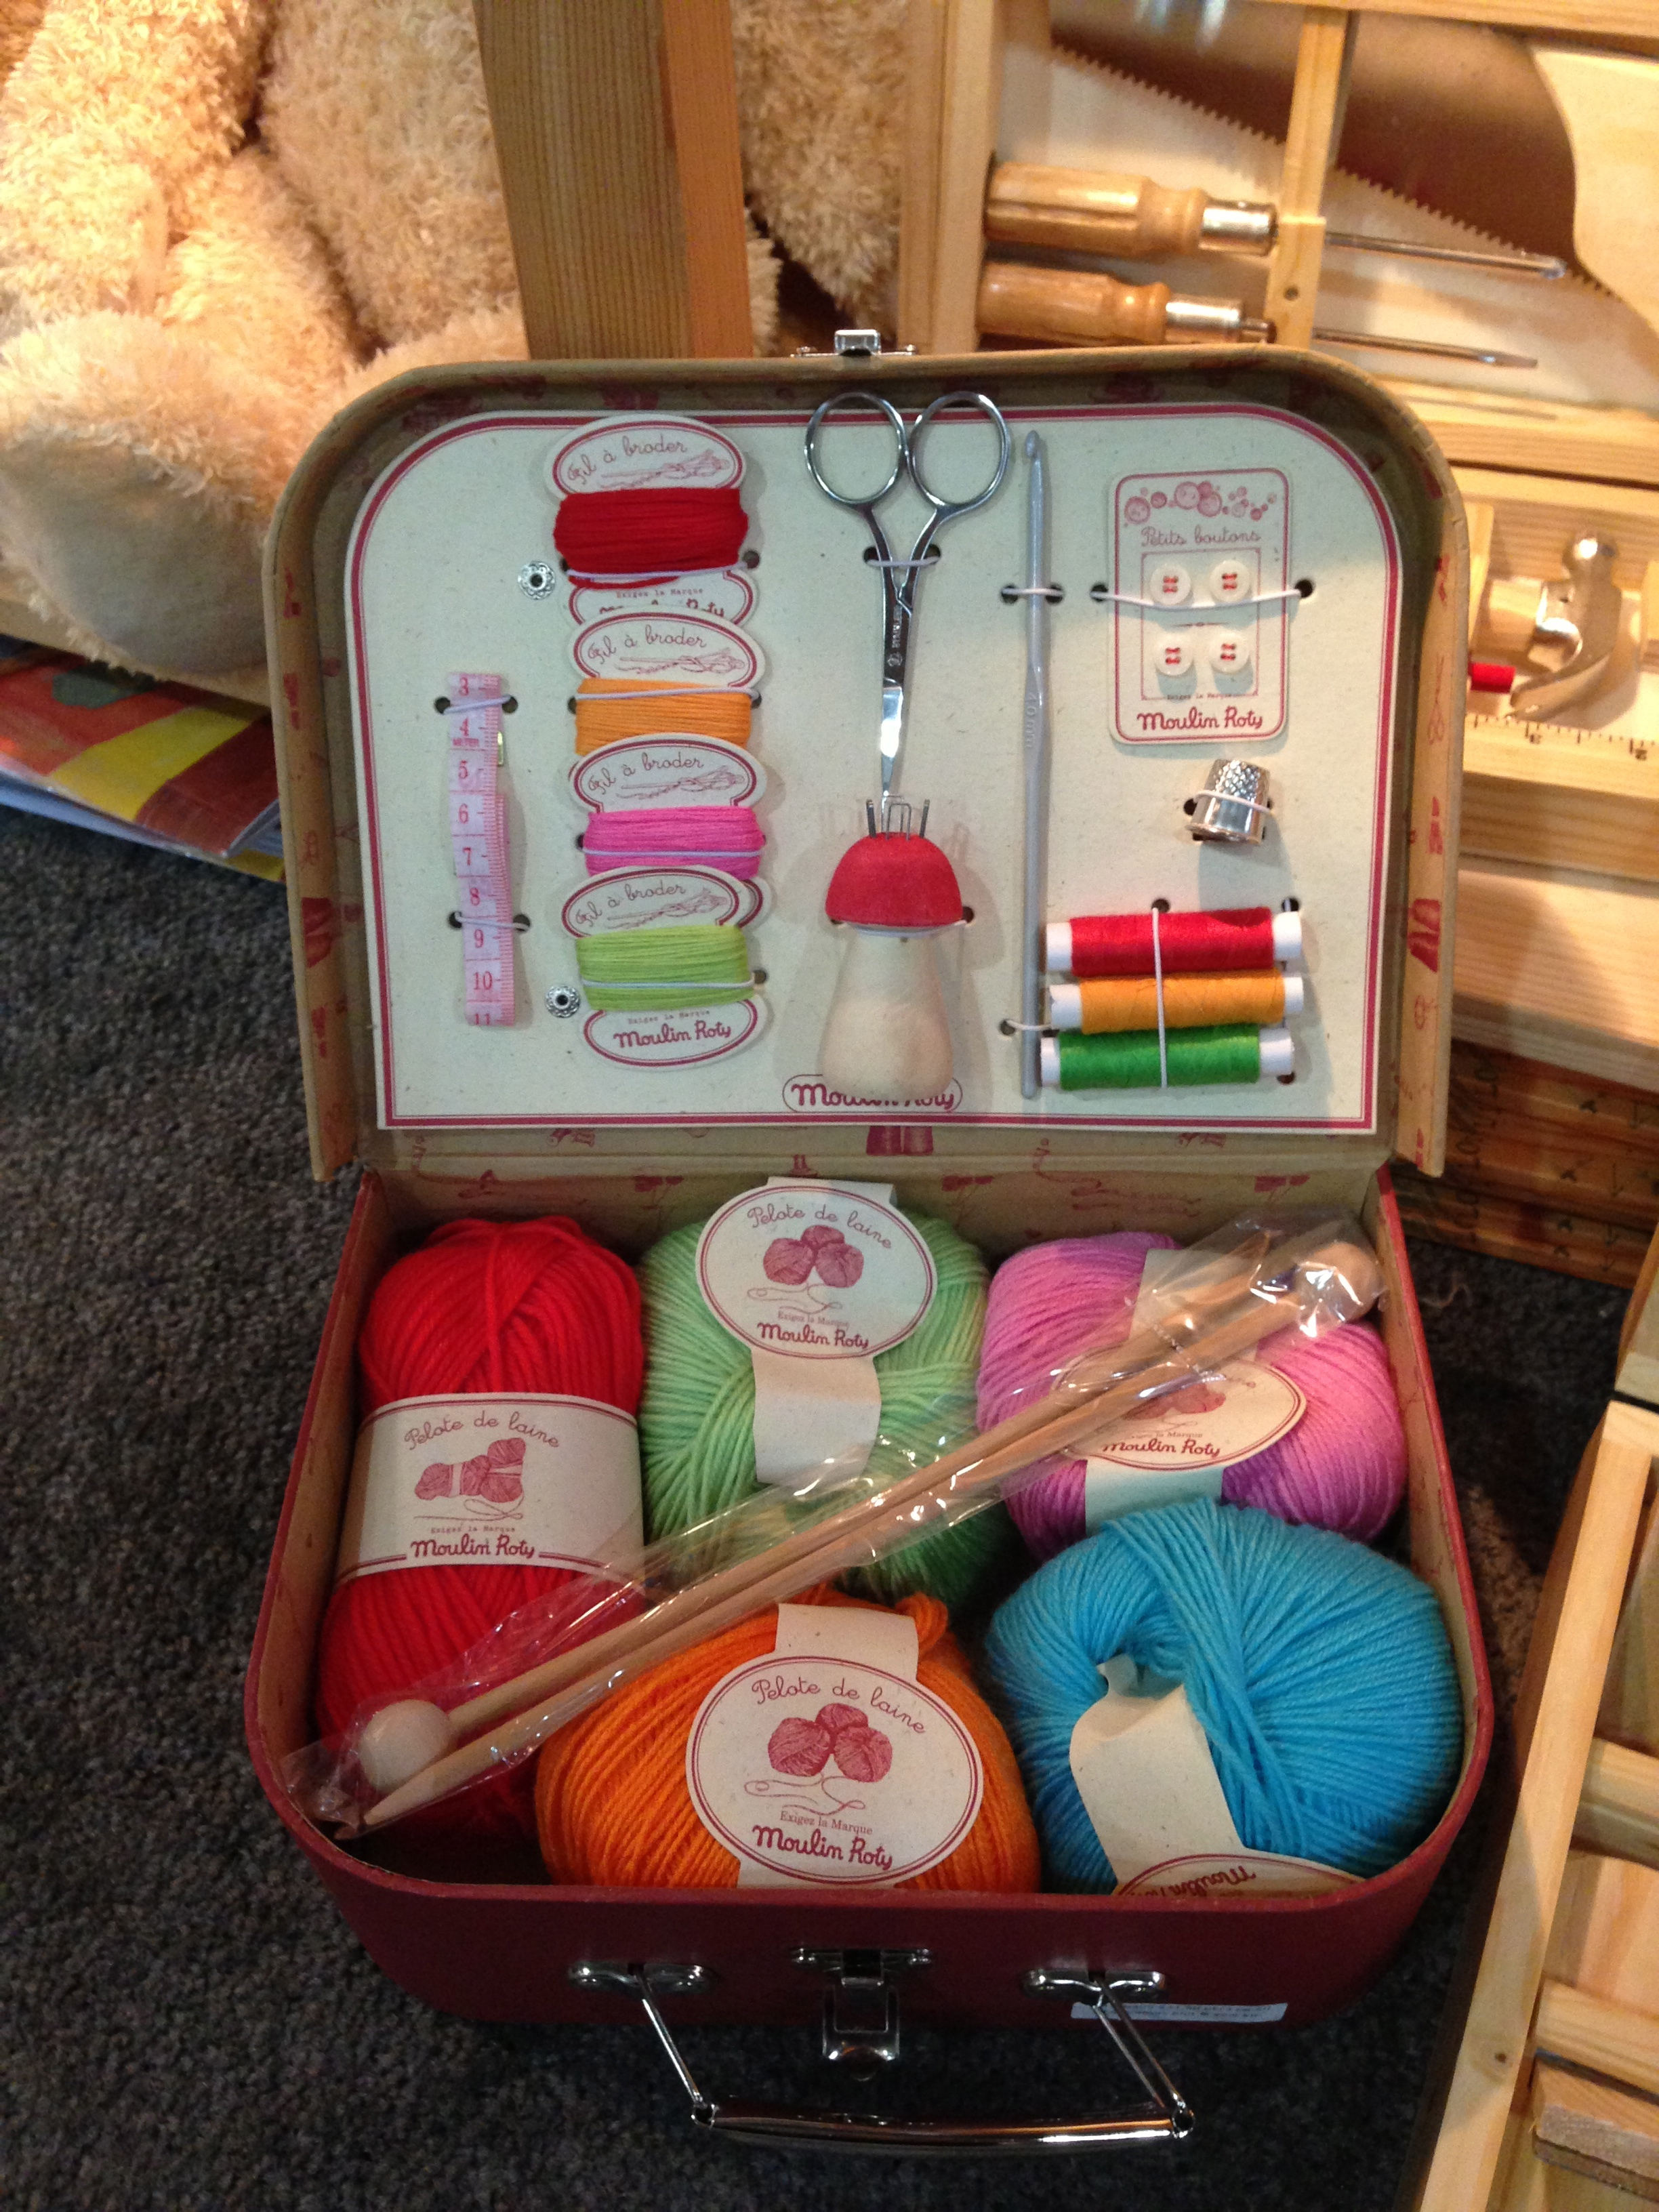 A real knitting set for your crafty tot from French brand Moulin Roty.